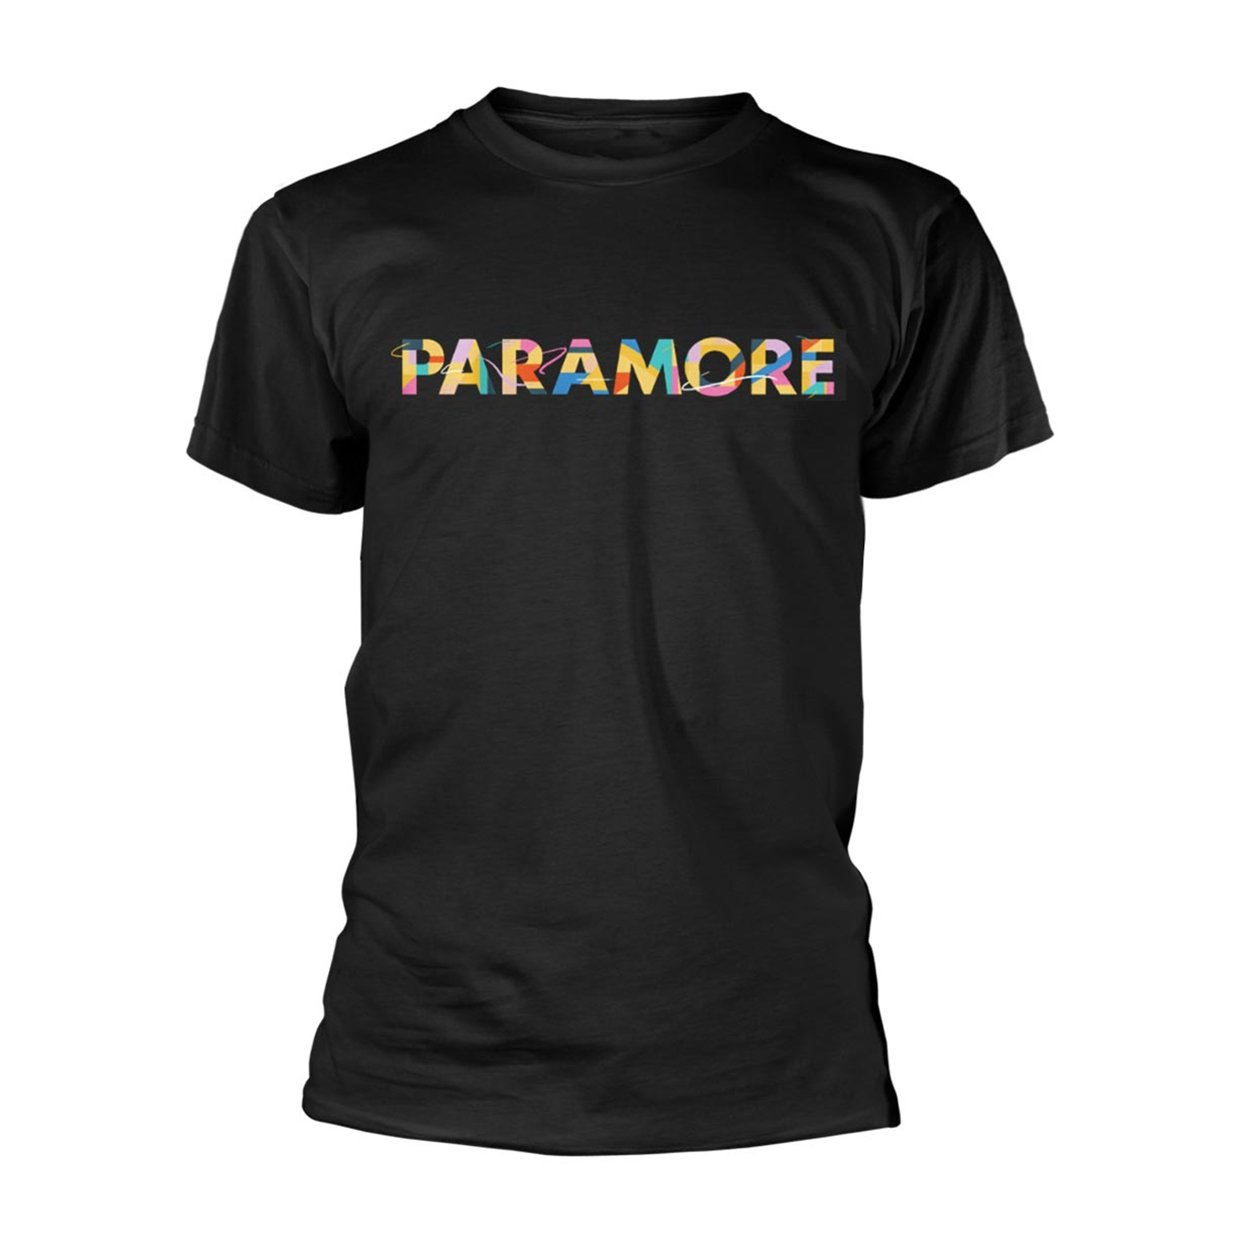 Amazon.com: Paramore Unisex-Adults Official Colour Swatch T Shirt (Black): Clothing